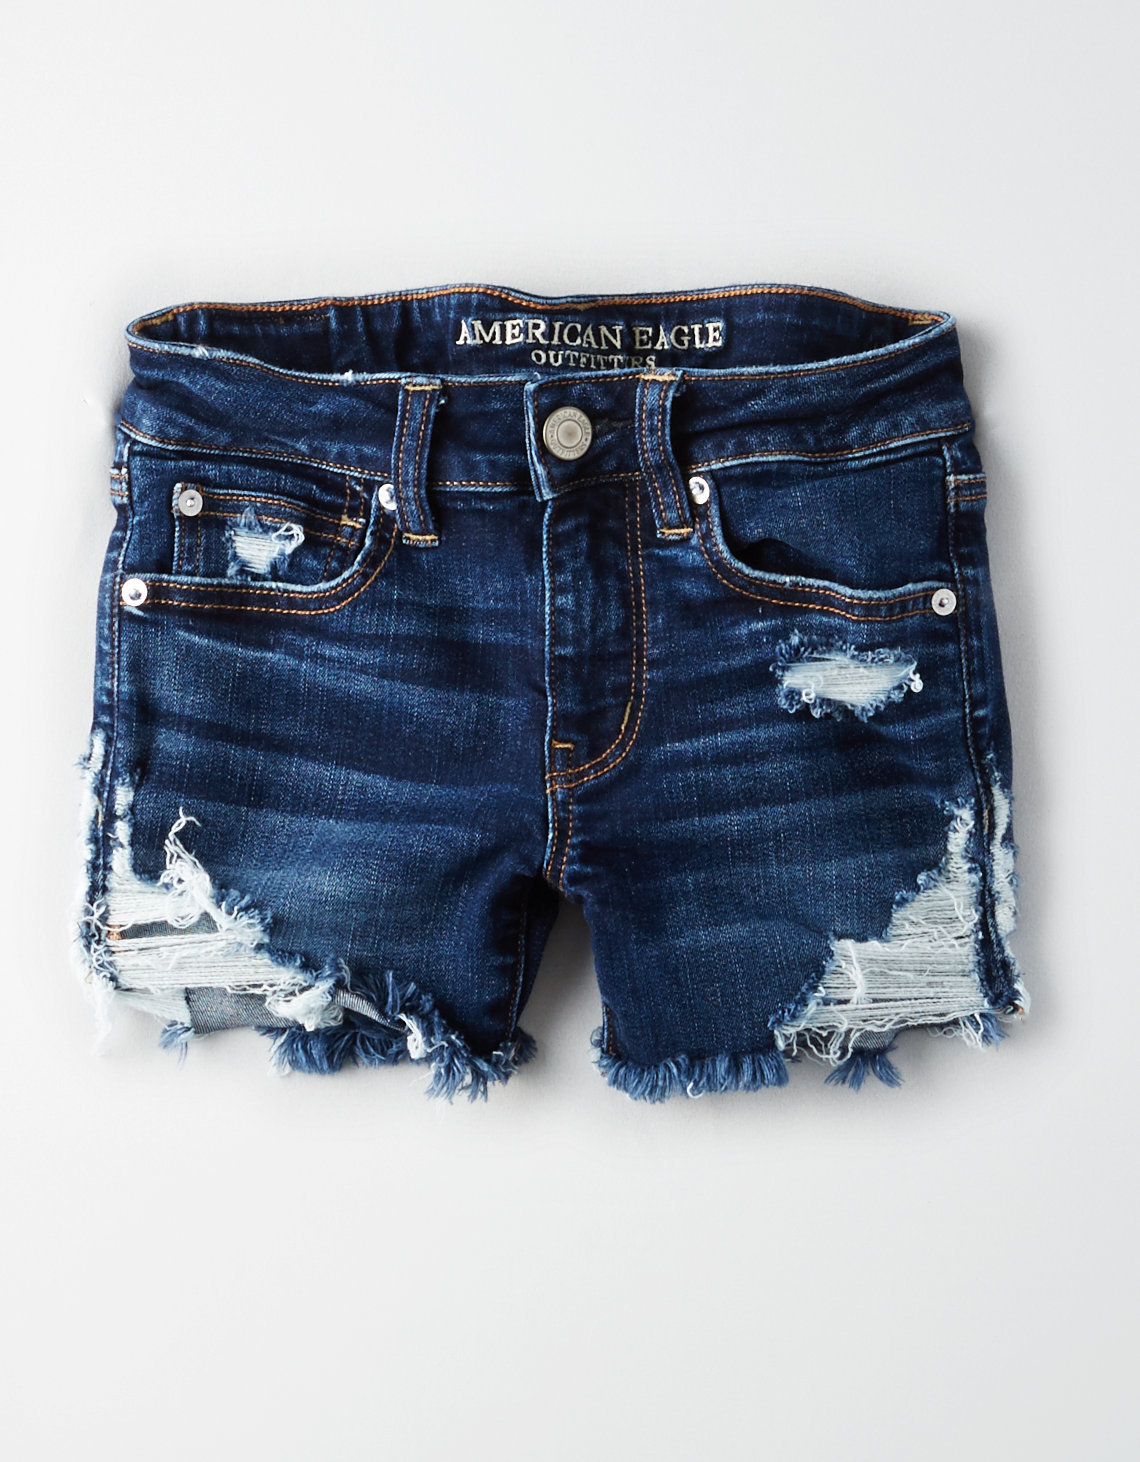 2019 year looks- Eagle american jean shorts photo